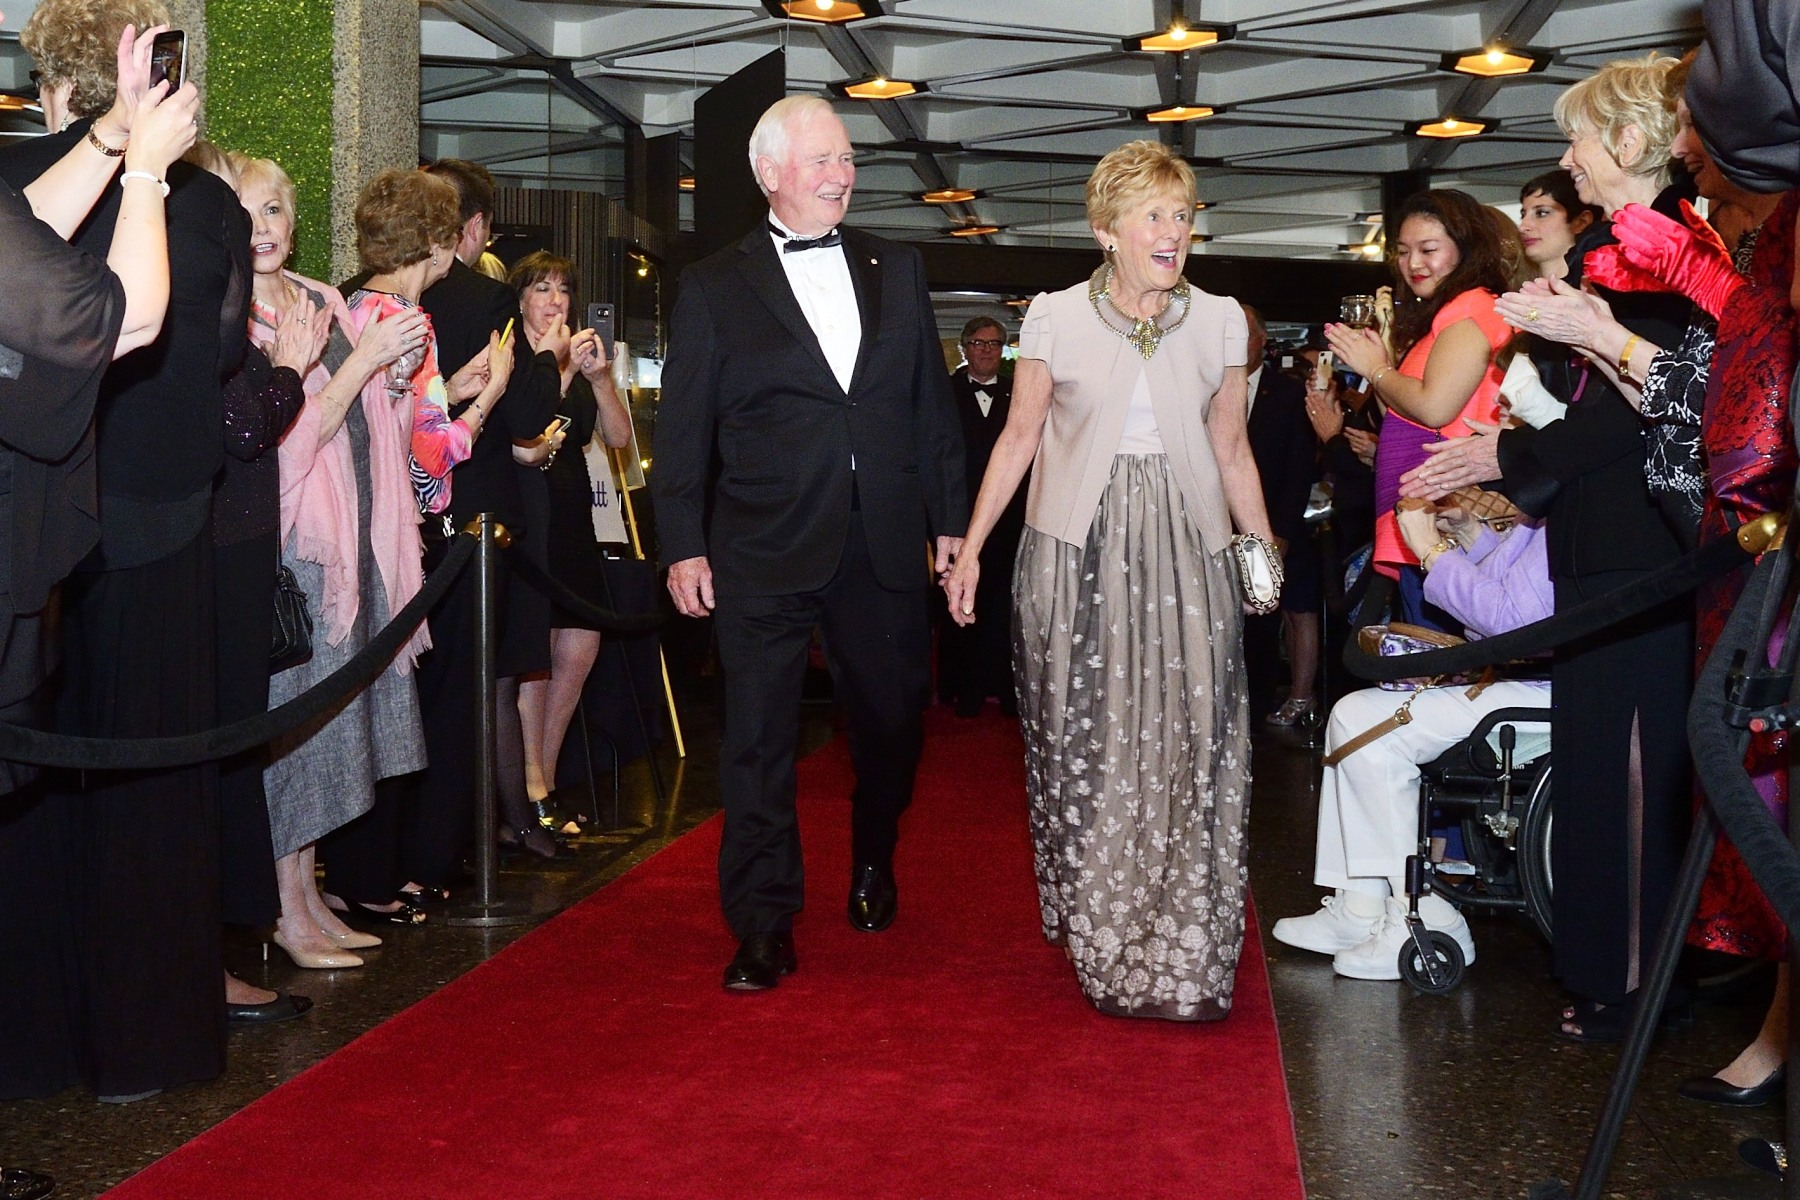 Their Excellencies came back just in time from London, where they participated to Her Majesty The Queen's 90th anniversary celebrations, to attend the Governor General's Performing Arts Awards  gala at the National Arts Centre, in Ottawa.